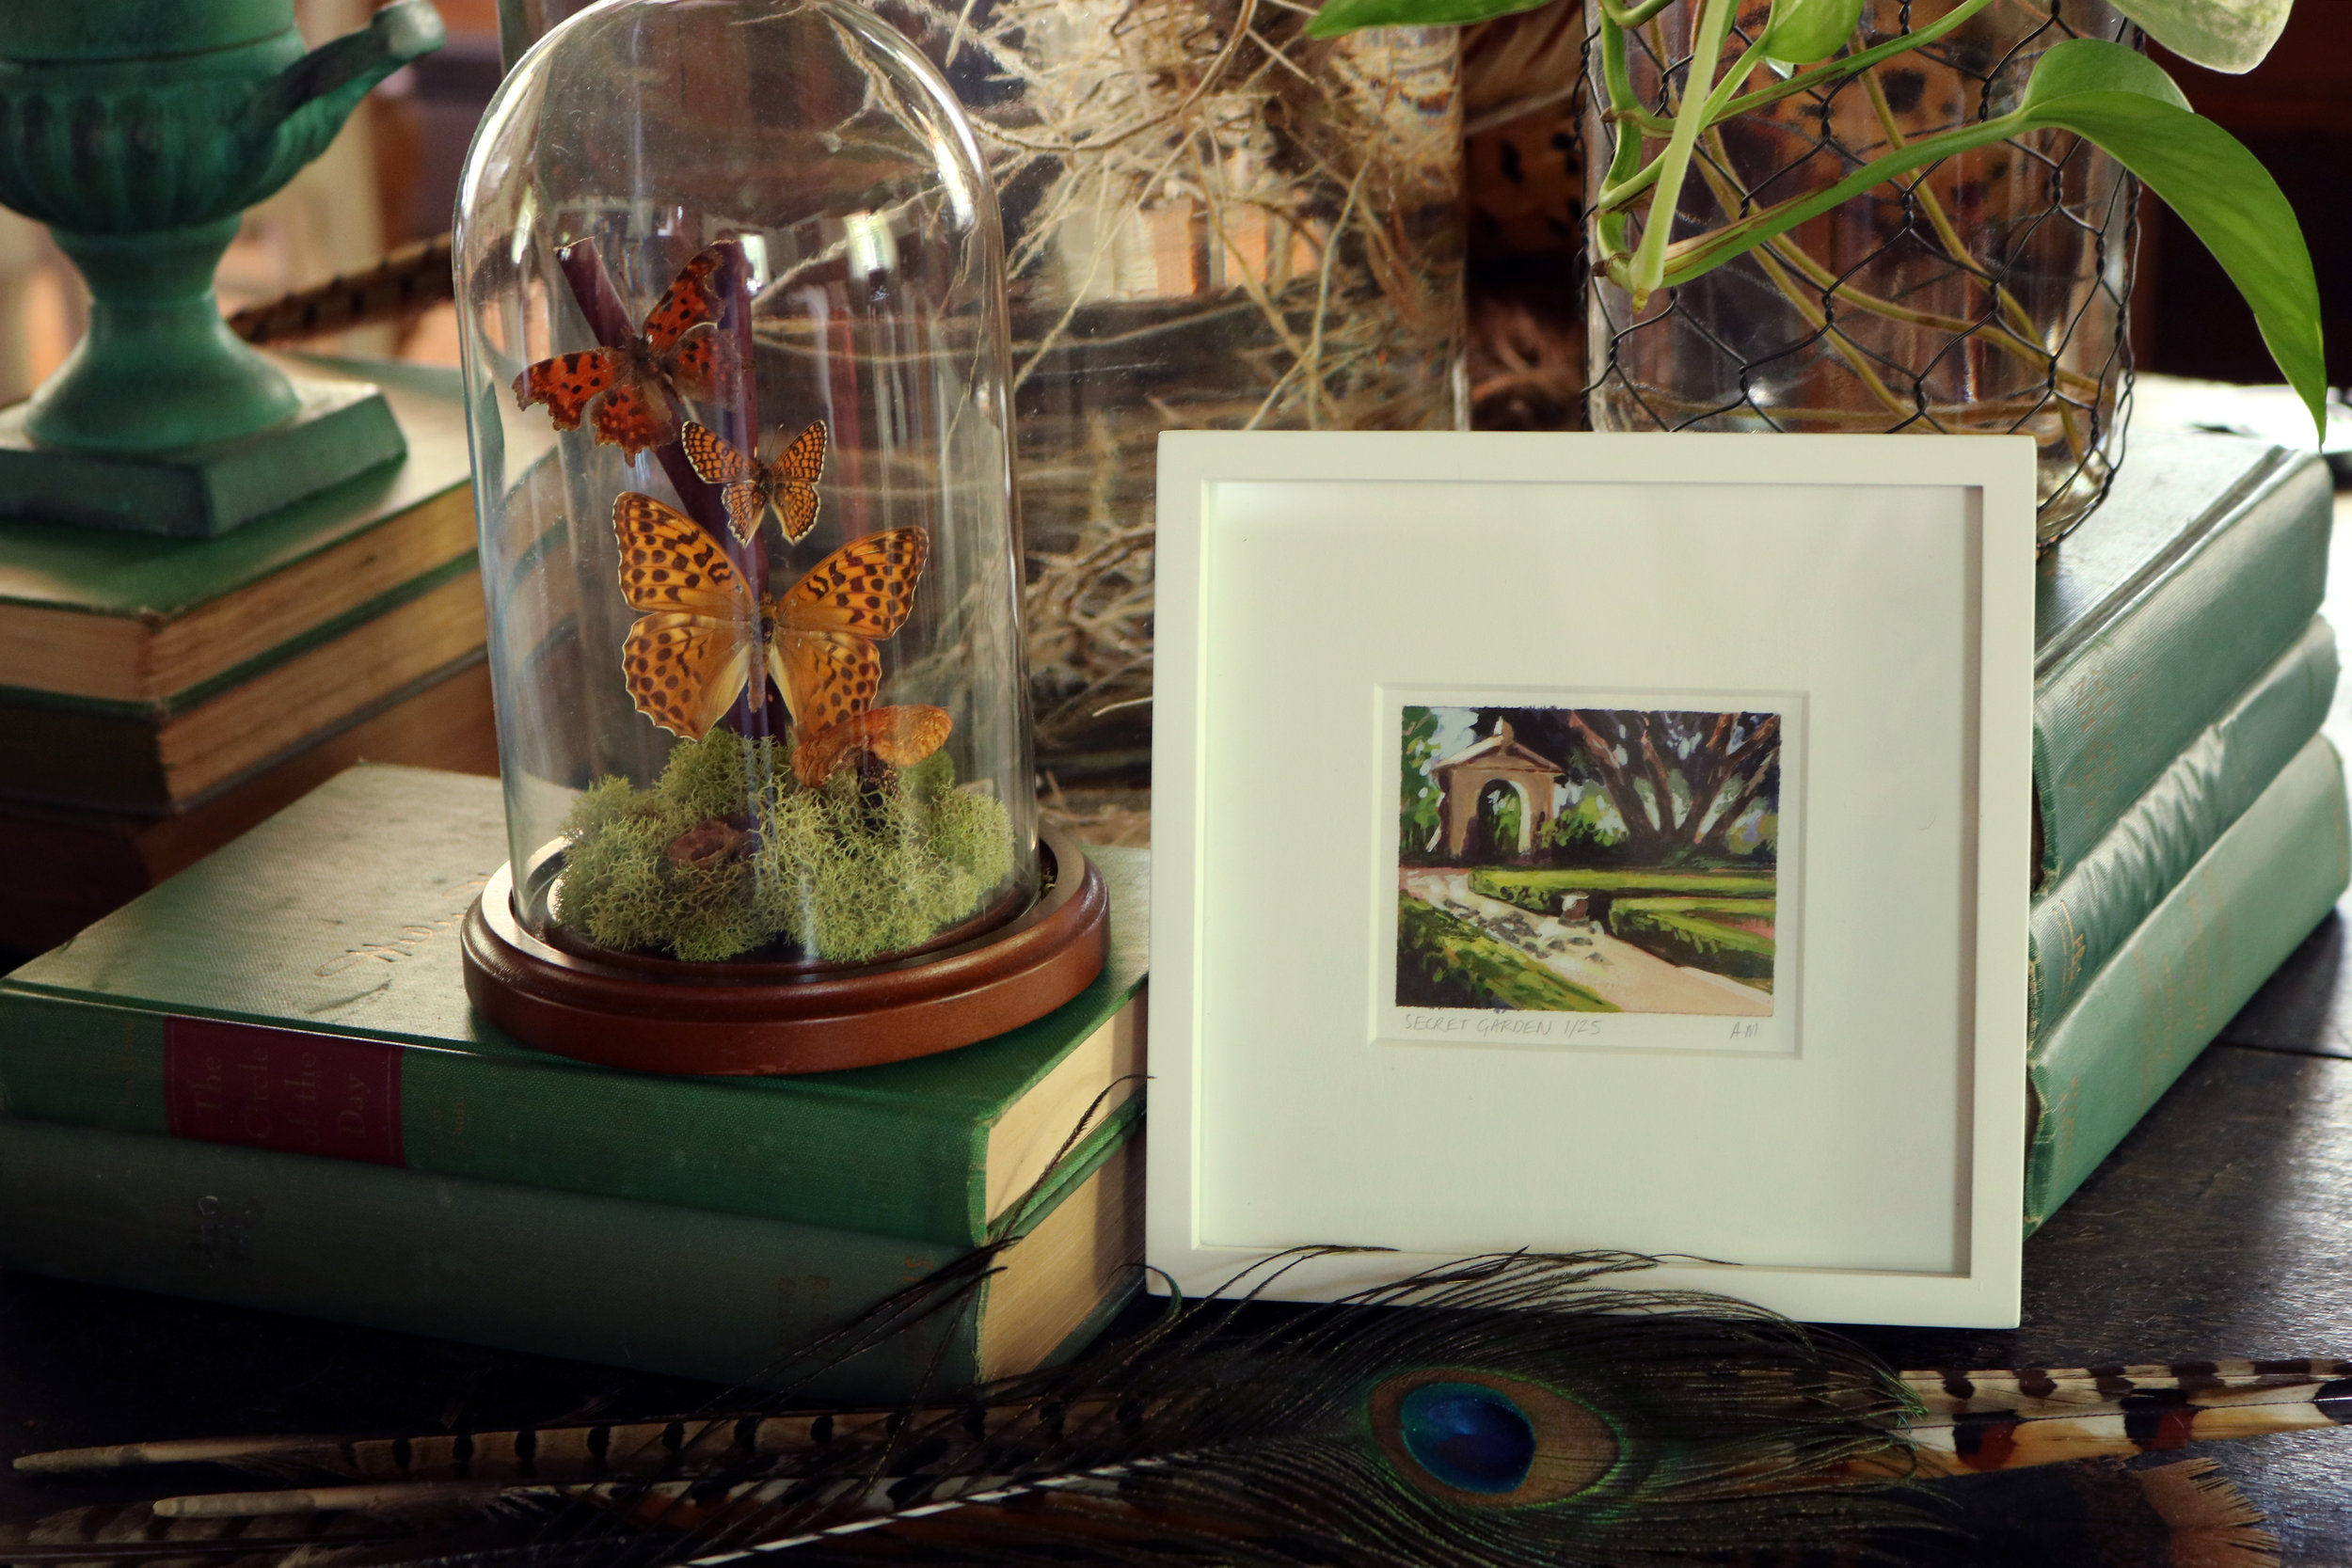 My Small Paintings miniature tiny art plein air framed watercolour painting of secret walled summer garden in Balboa Park San Diego California